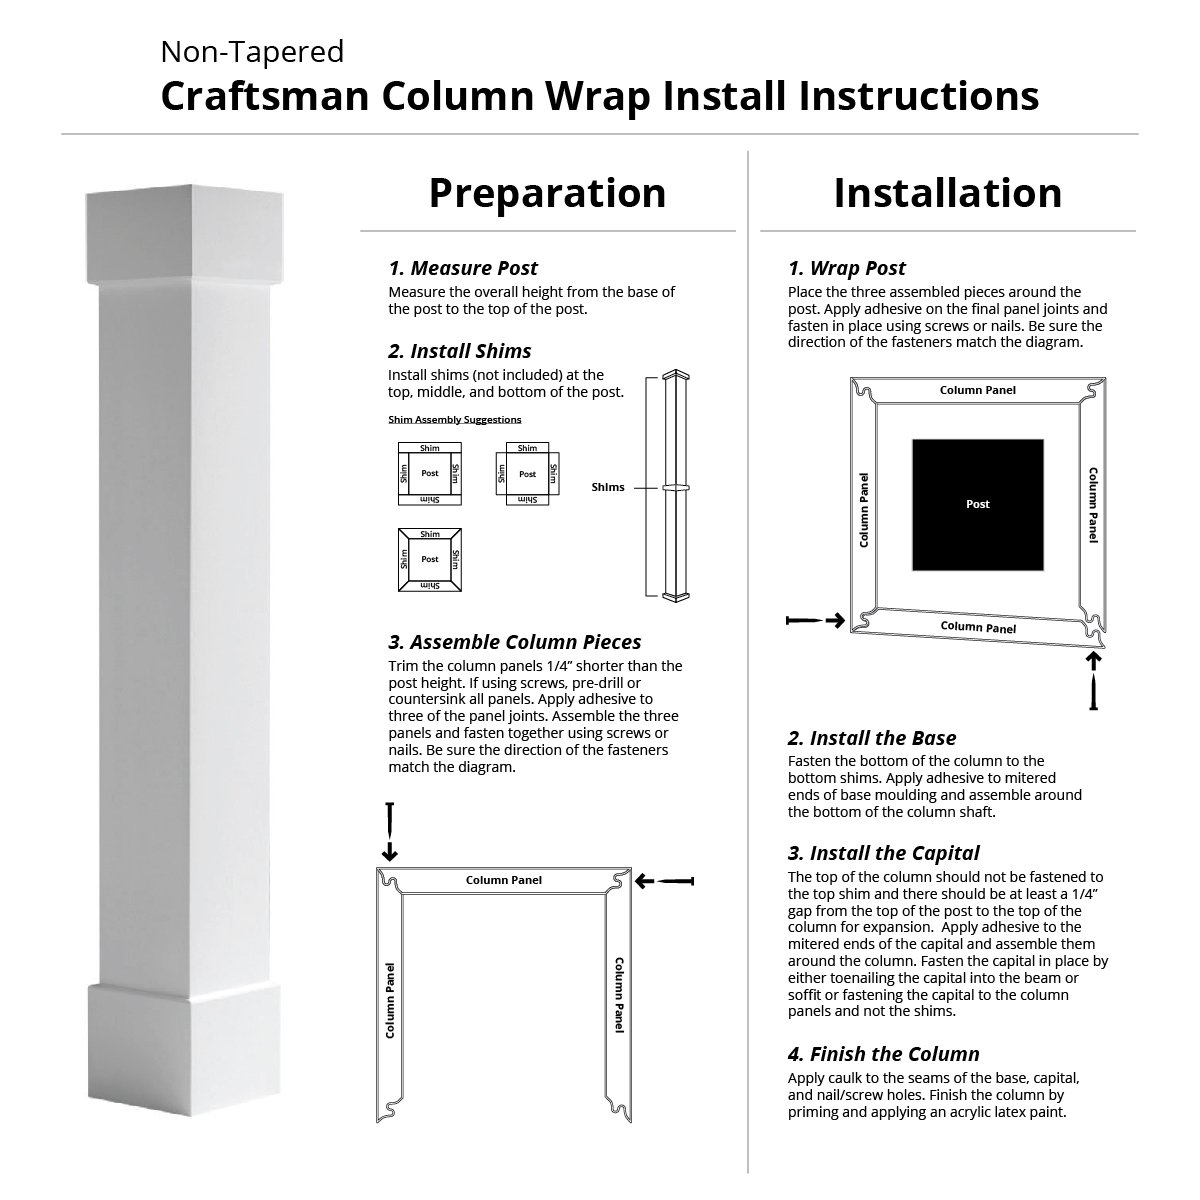 Fluted Cellular PVC Endura-Craft Craftsman Column Wrap 6 Square Shaft x 5 Overall Height Non-Tapered Standard Base /& Capital